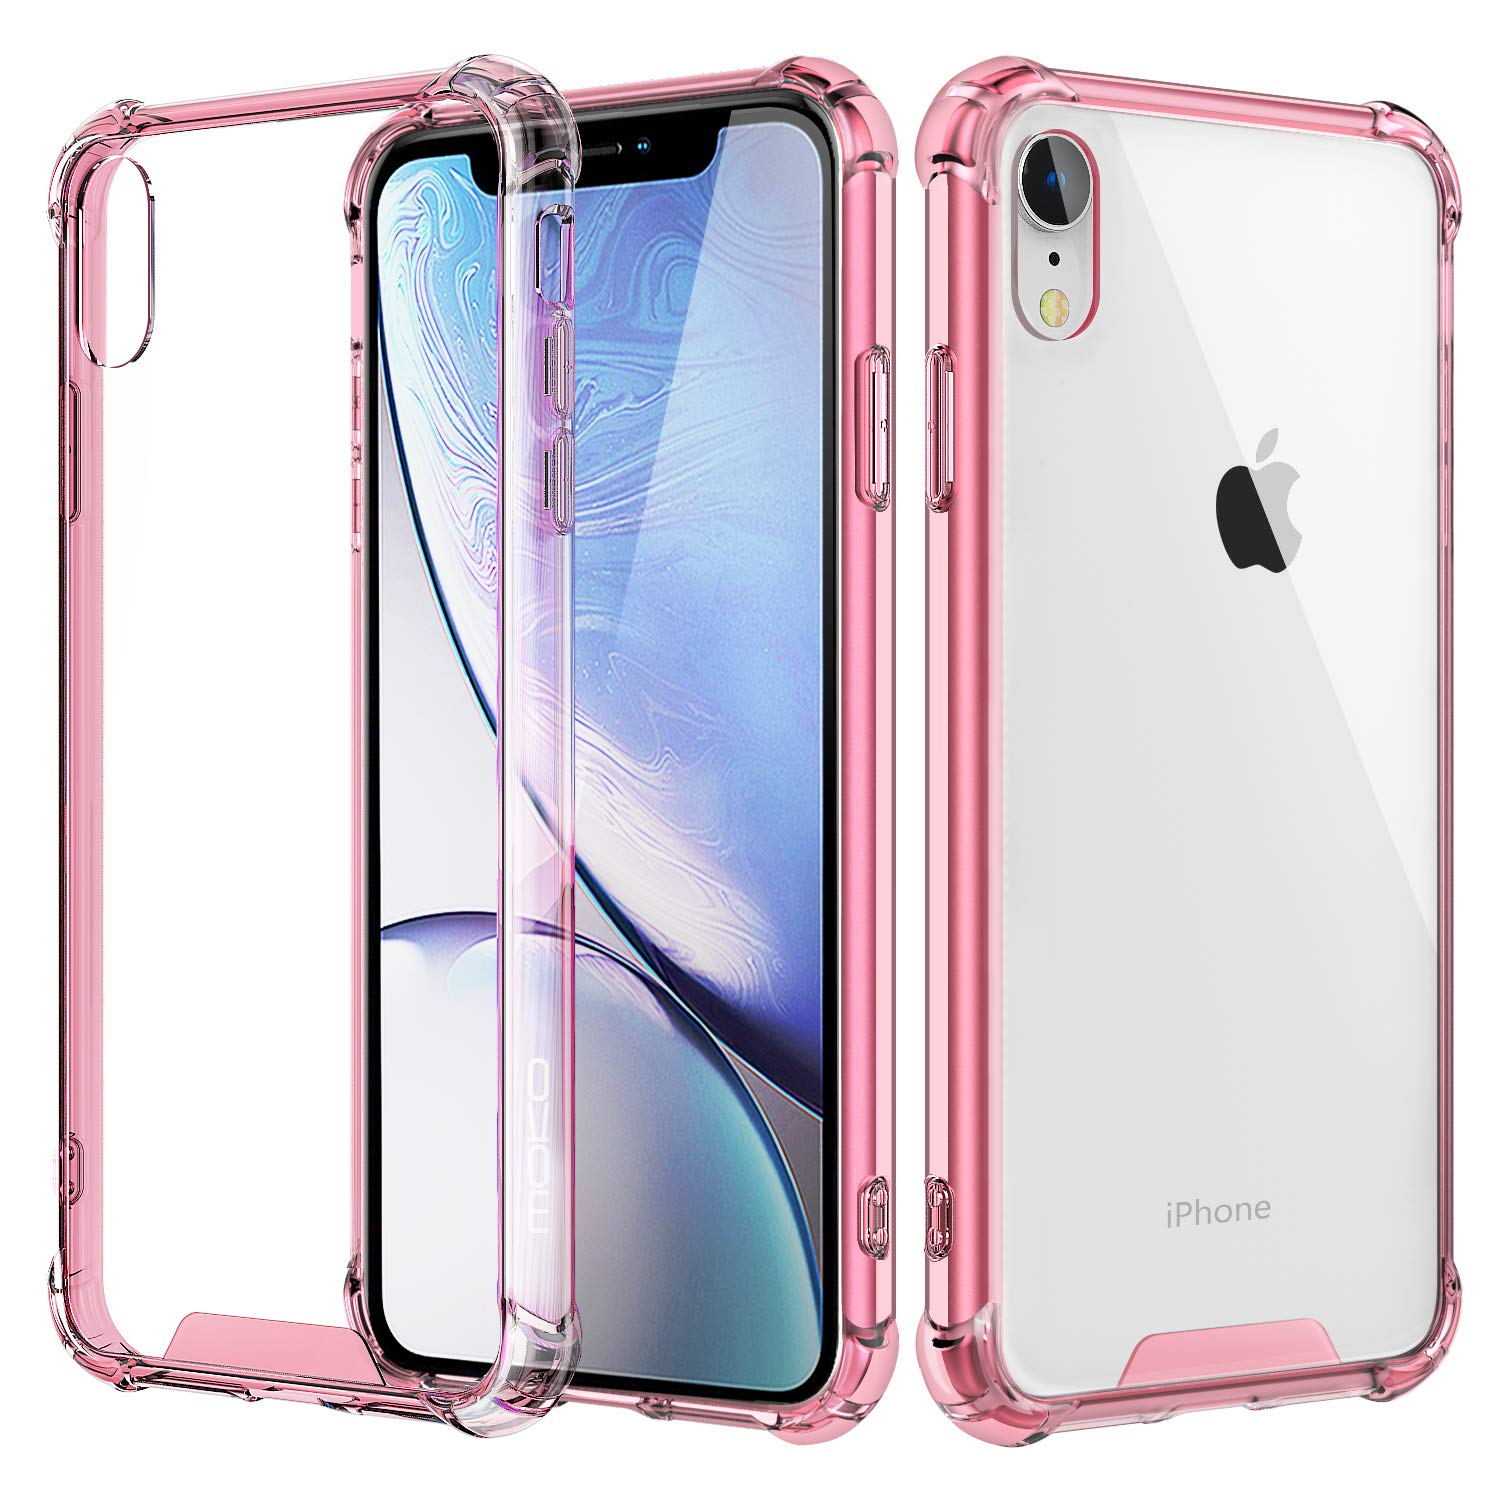 MoKo Compatible with iPhone XR Case, Crystal Clear Reinforced Corners TPU Bumper + Anti-Scratch Hybrid Rugged Transparent Hard Panel Cover Fit with Apple iPhone XR 6.1 inch 2018 - Crystal Clear Moko Cases 736313067200181031